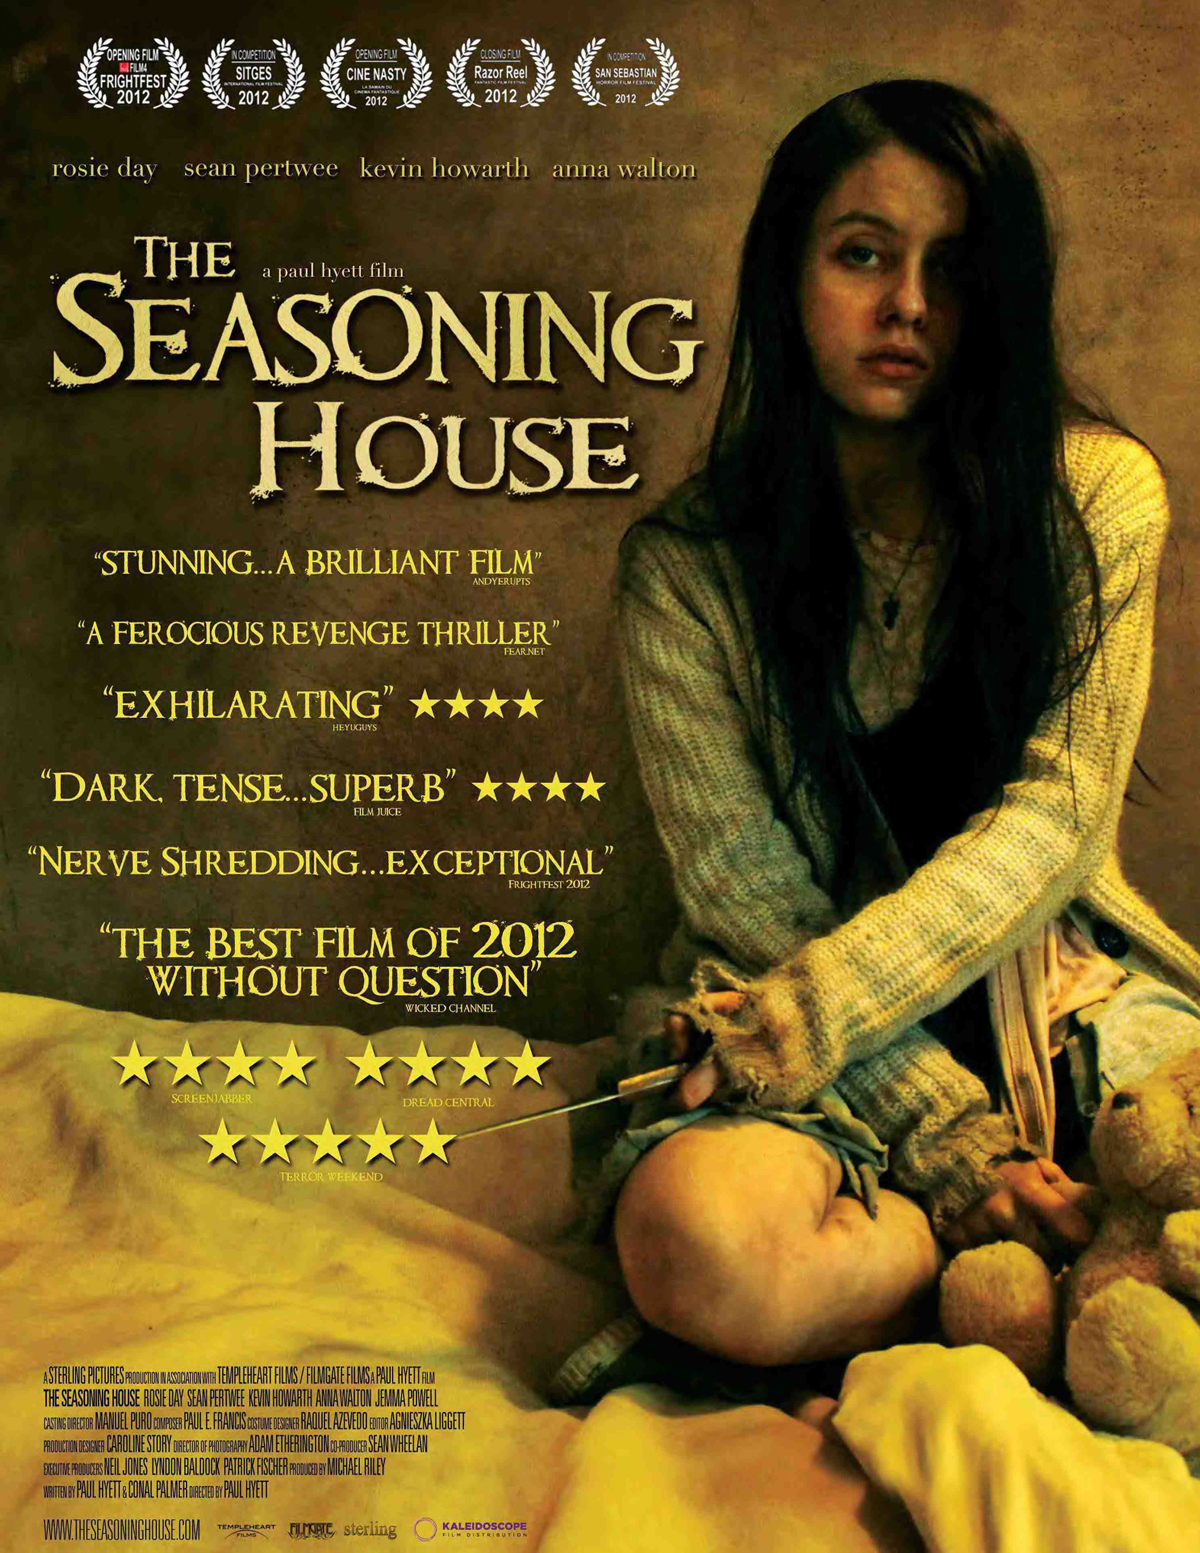 the-Seasoning_House-poster2.jpg